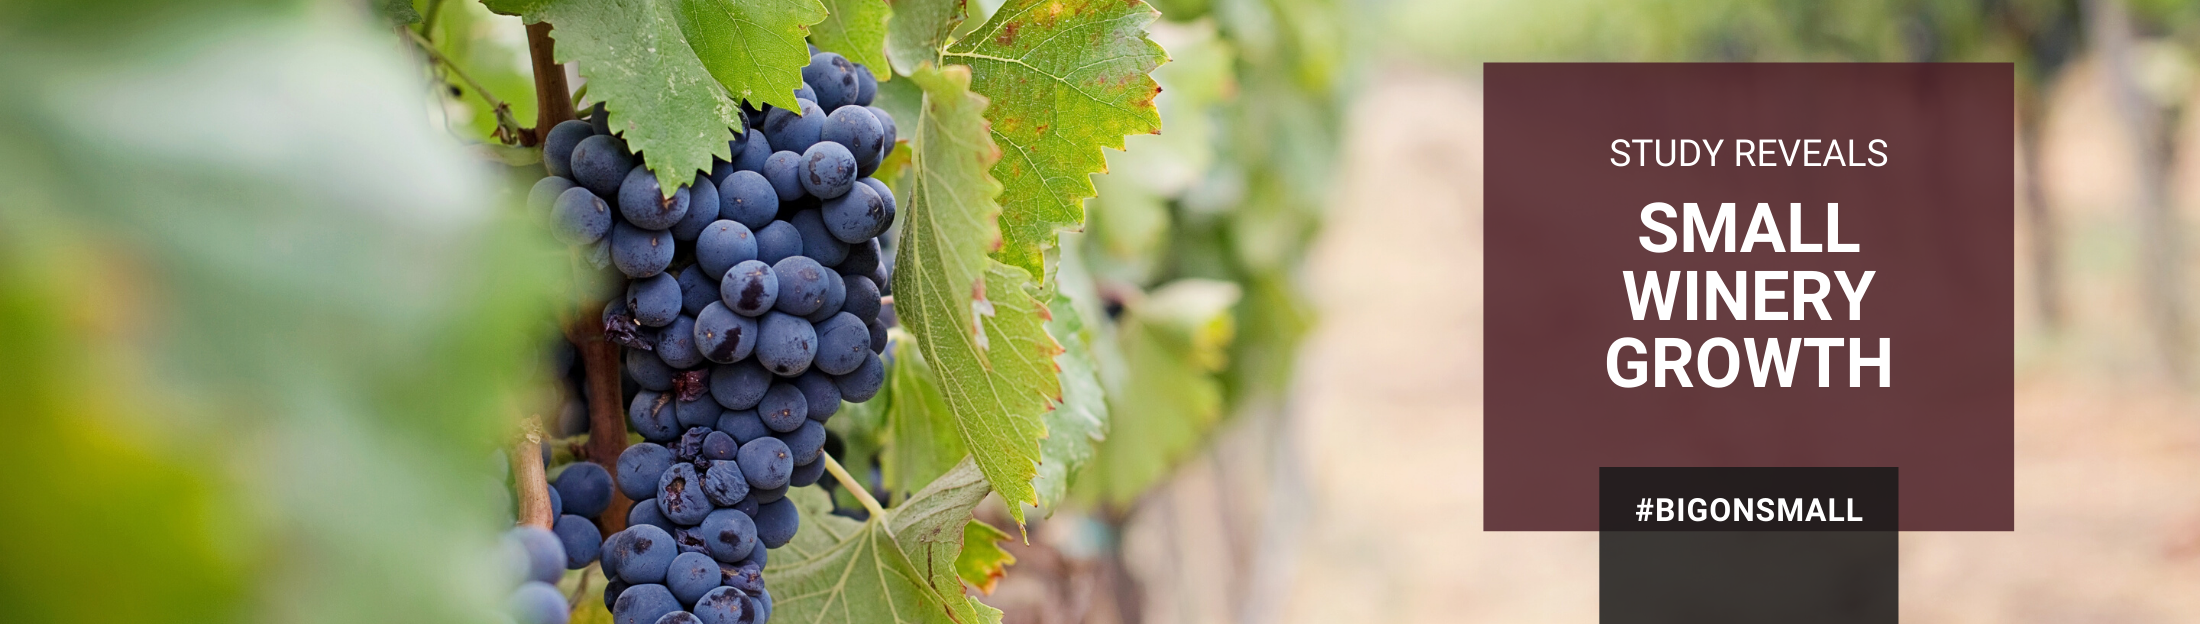 How even the smallest wineries can compete and be profitable!